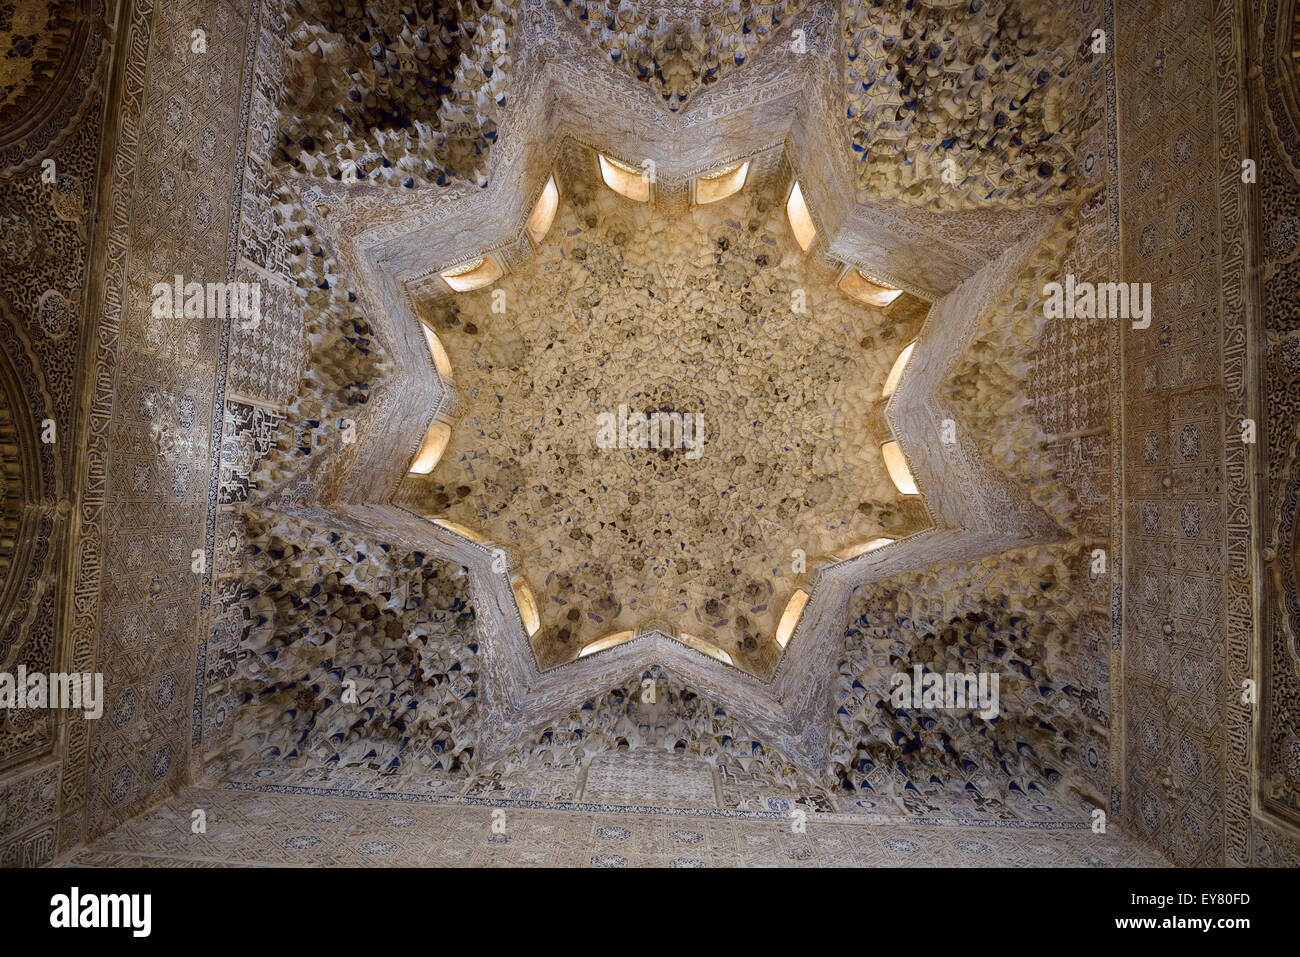 Ceiling of the Hall of the Abencerrages in the Nasrid Palaces of Alhambra Granada Spain - Stock Image